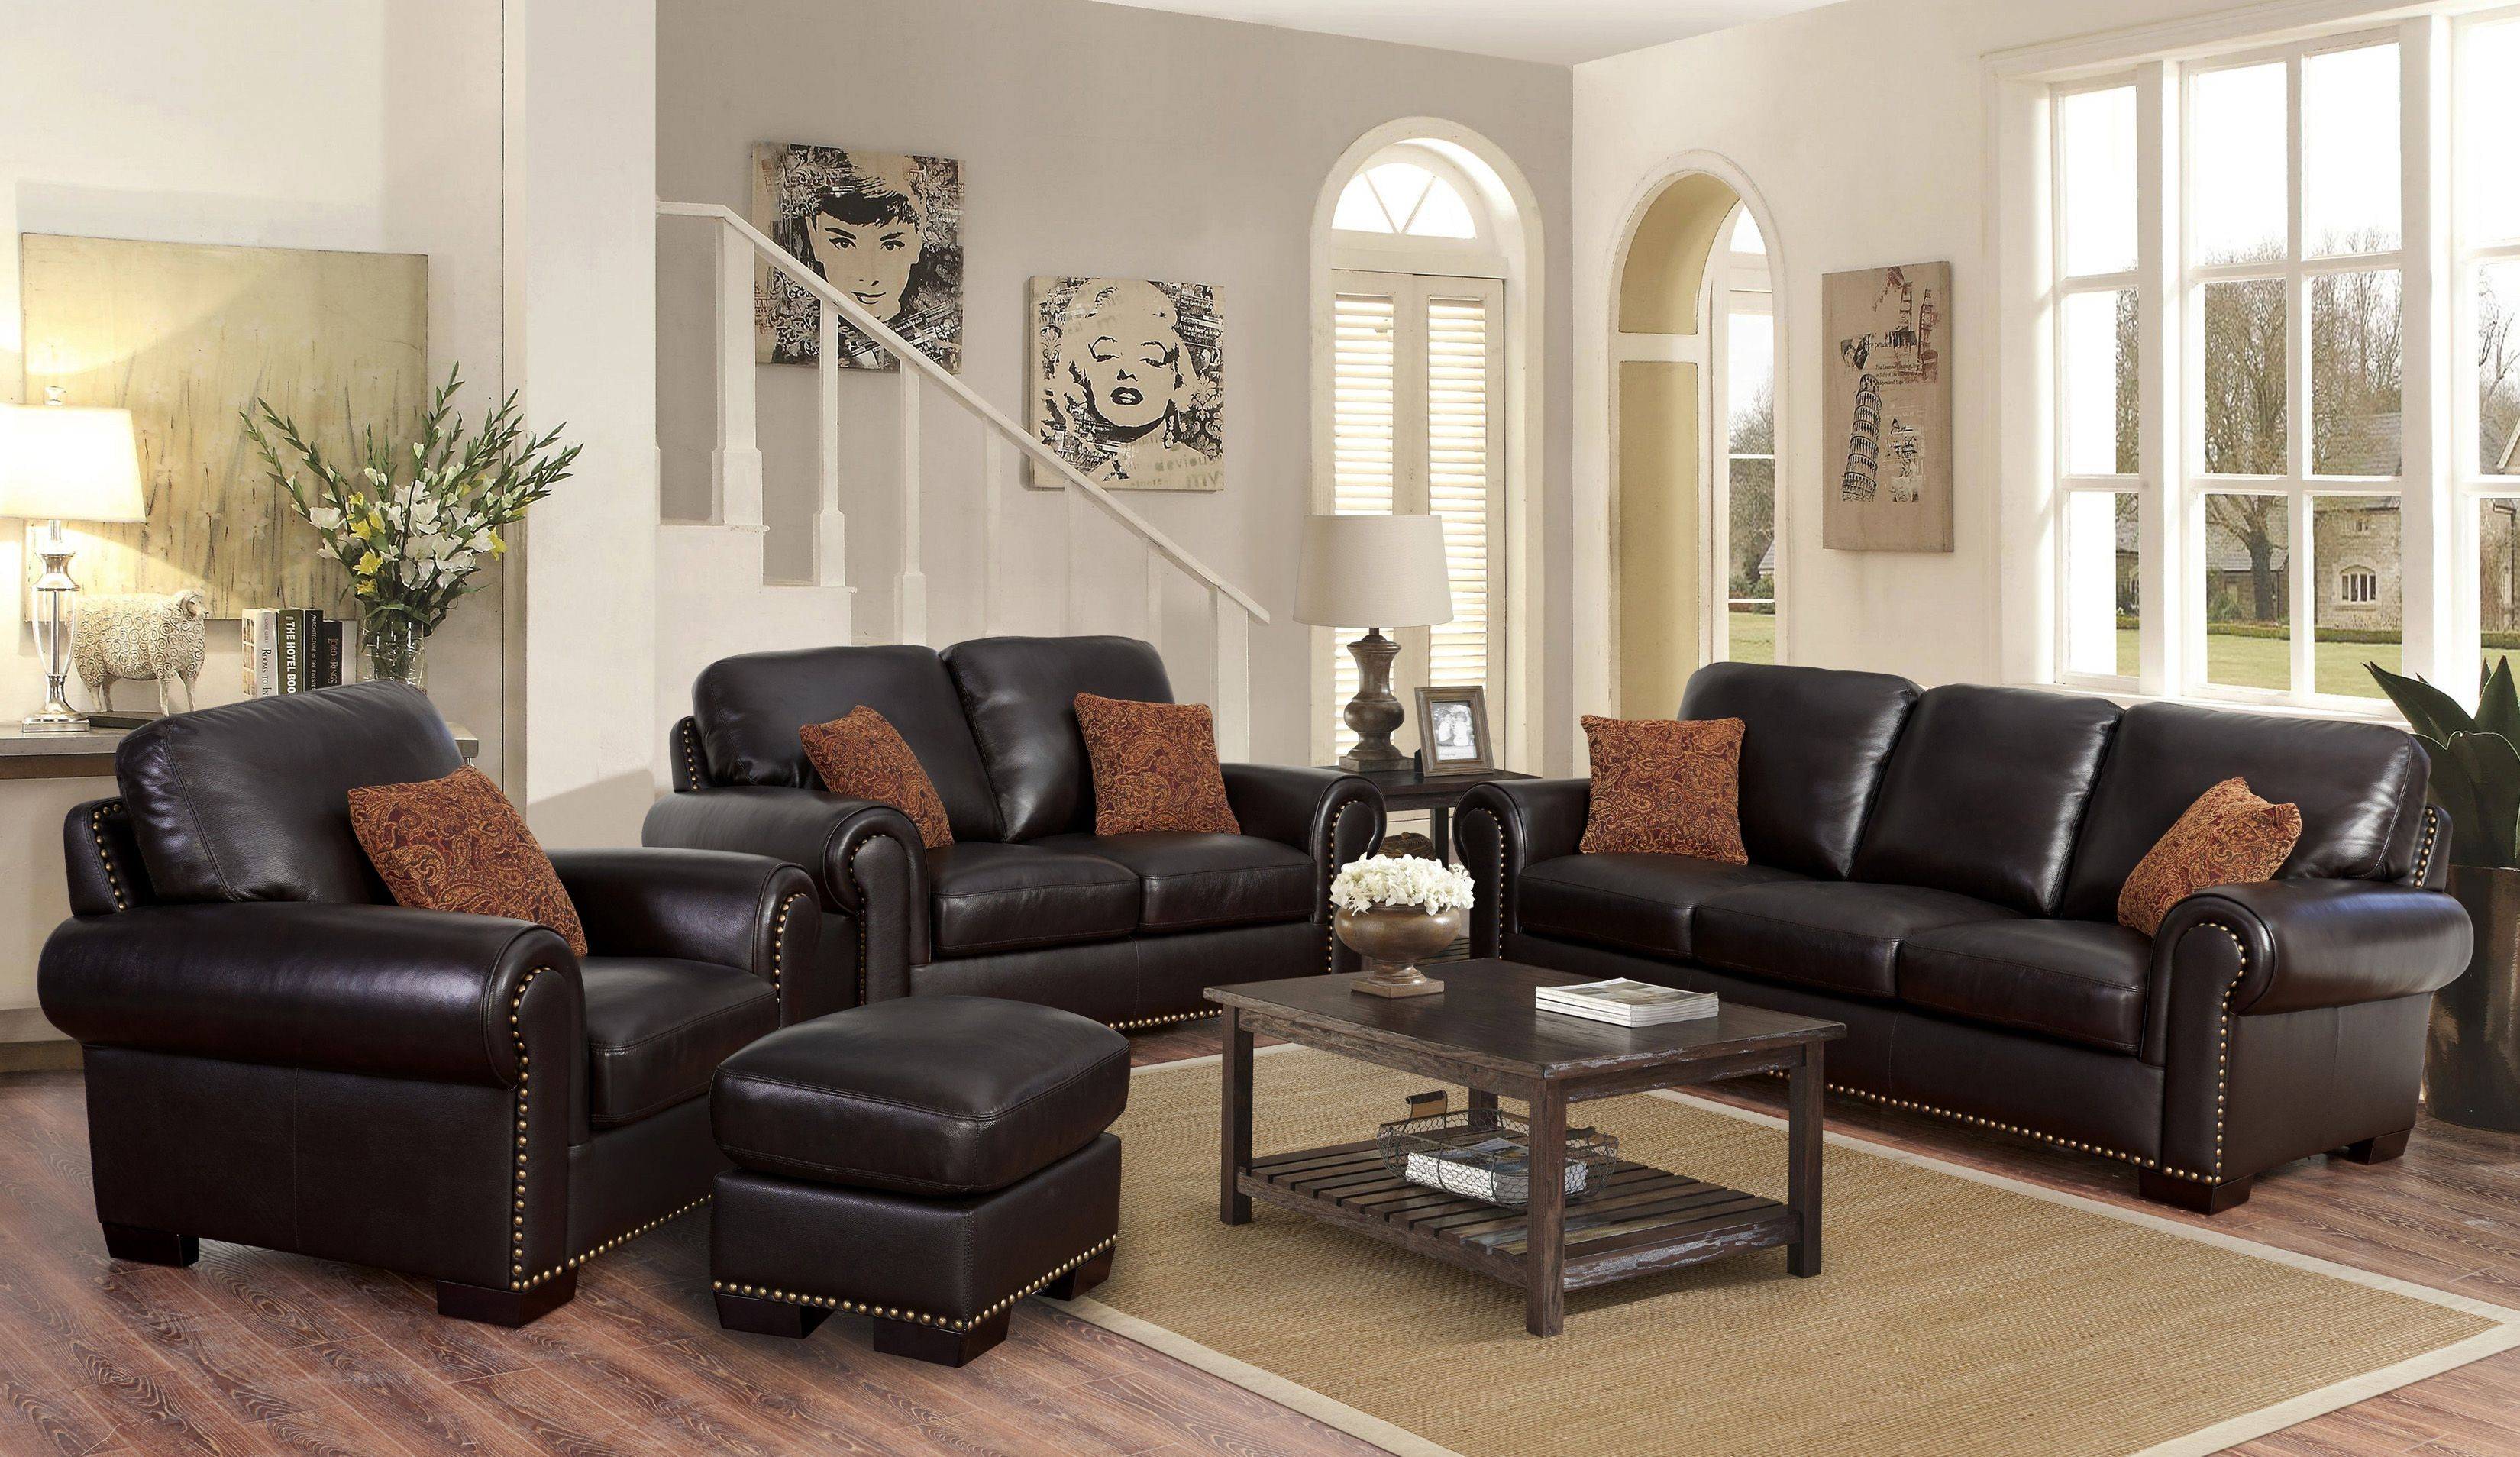 11 Genius Designs of How to Craft Costco Living Room Sets in 11